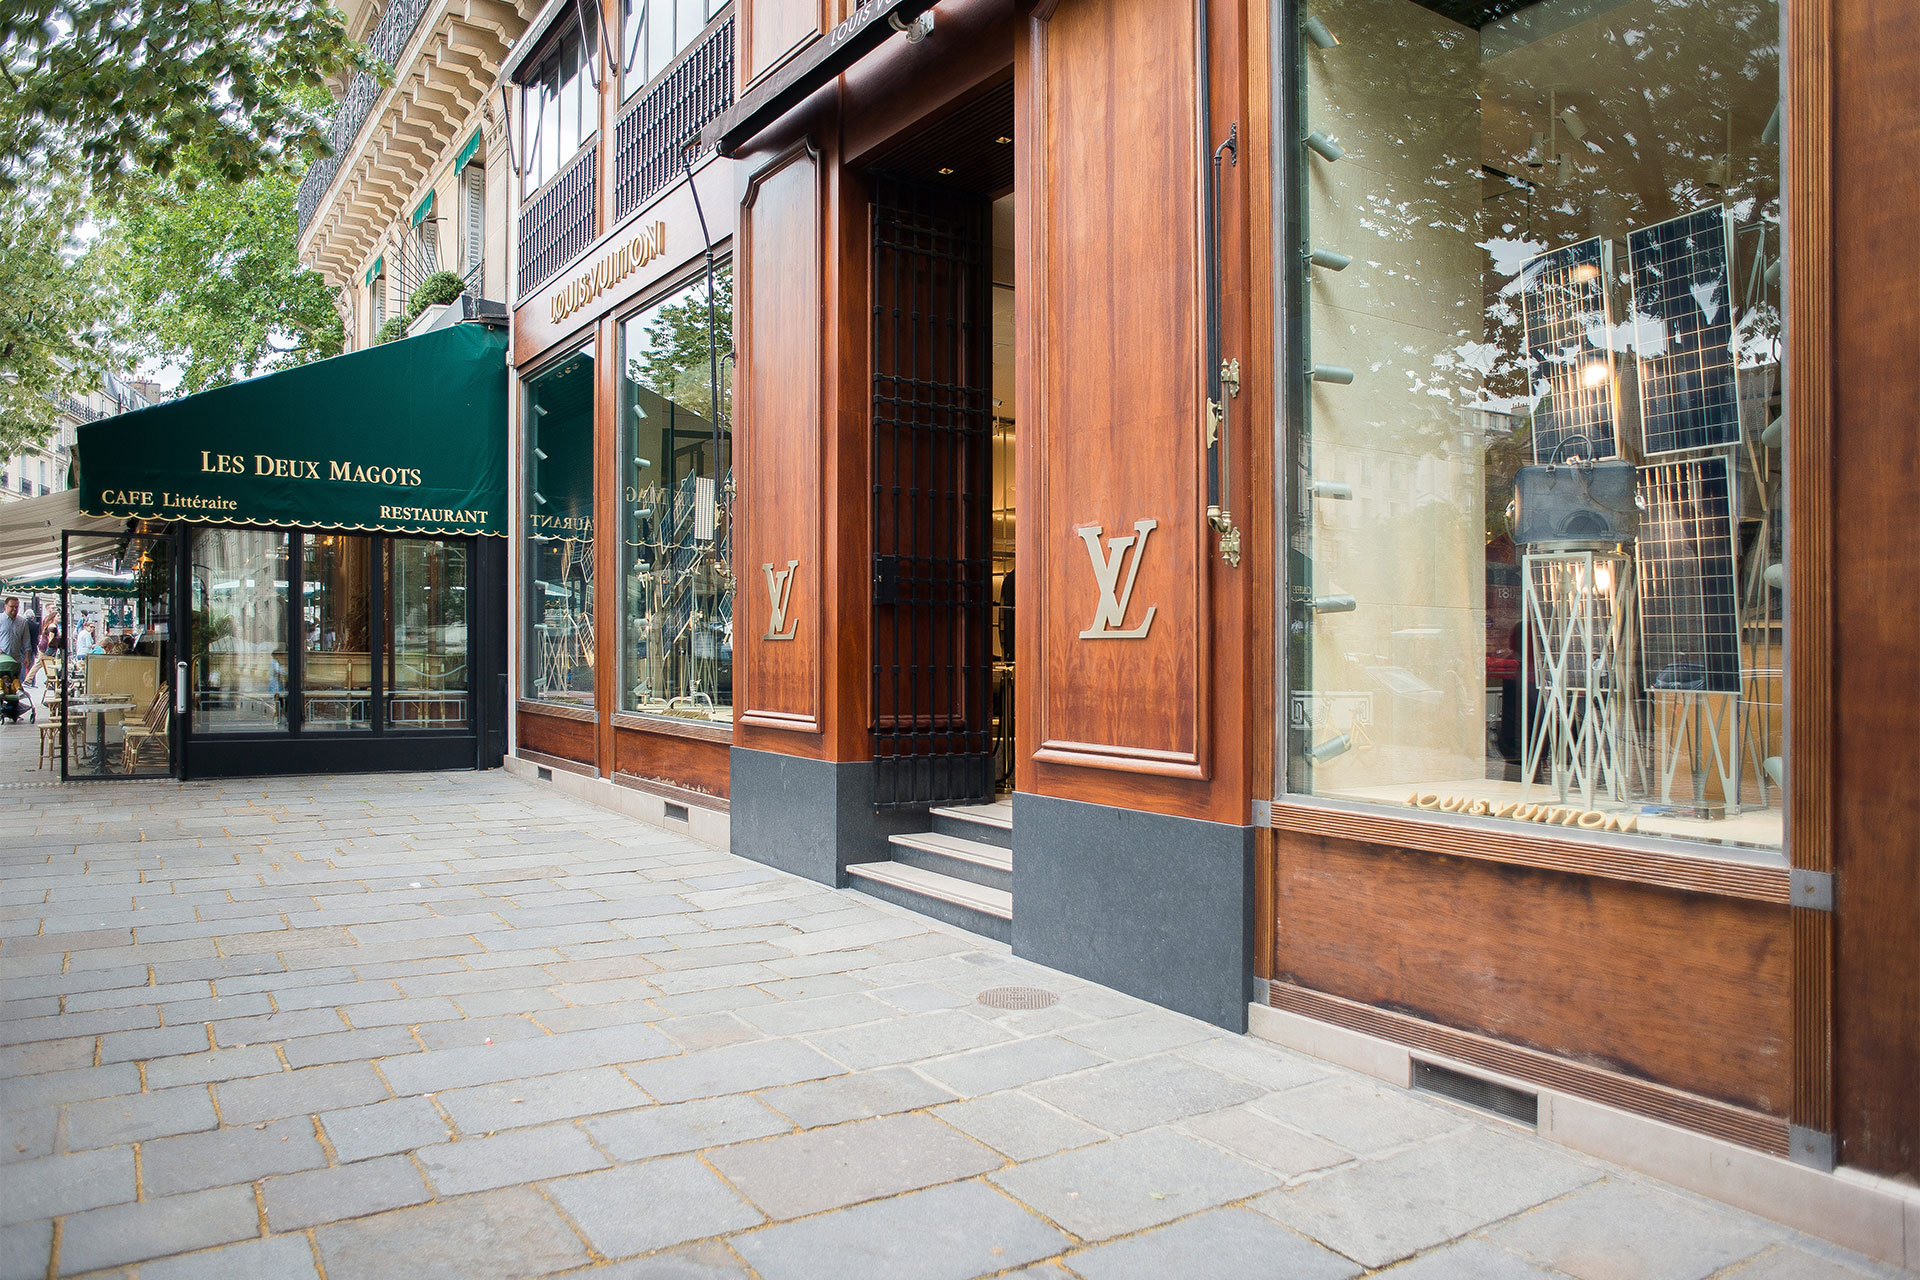 Shop in style in the chic Saint Germain neighborhood - Paris Perfect